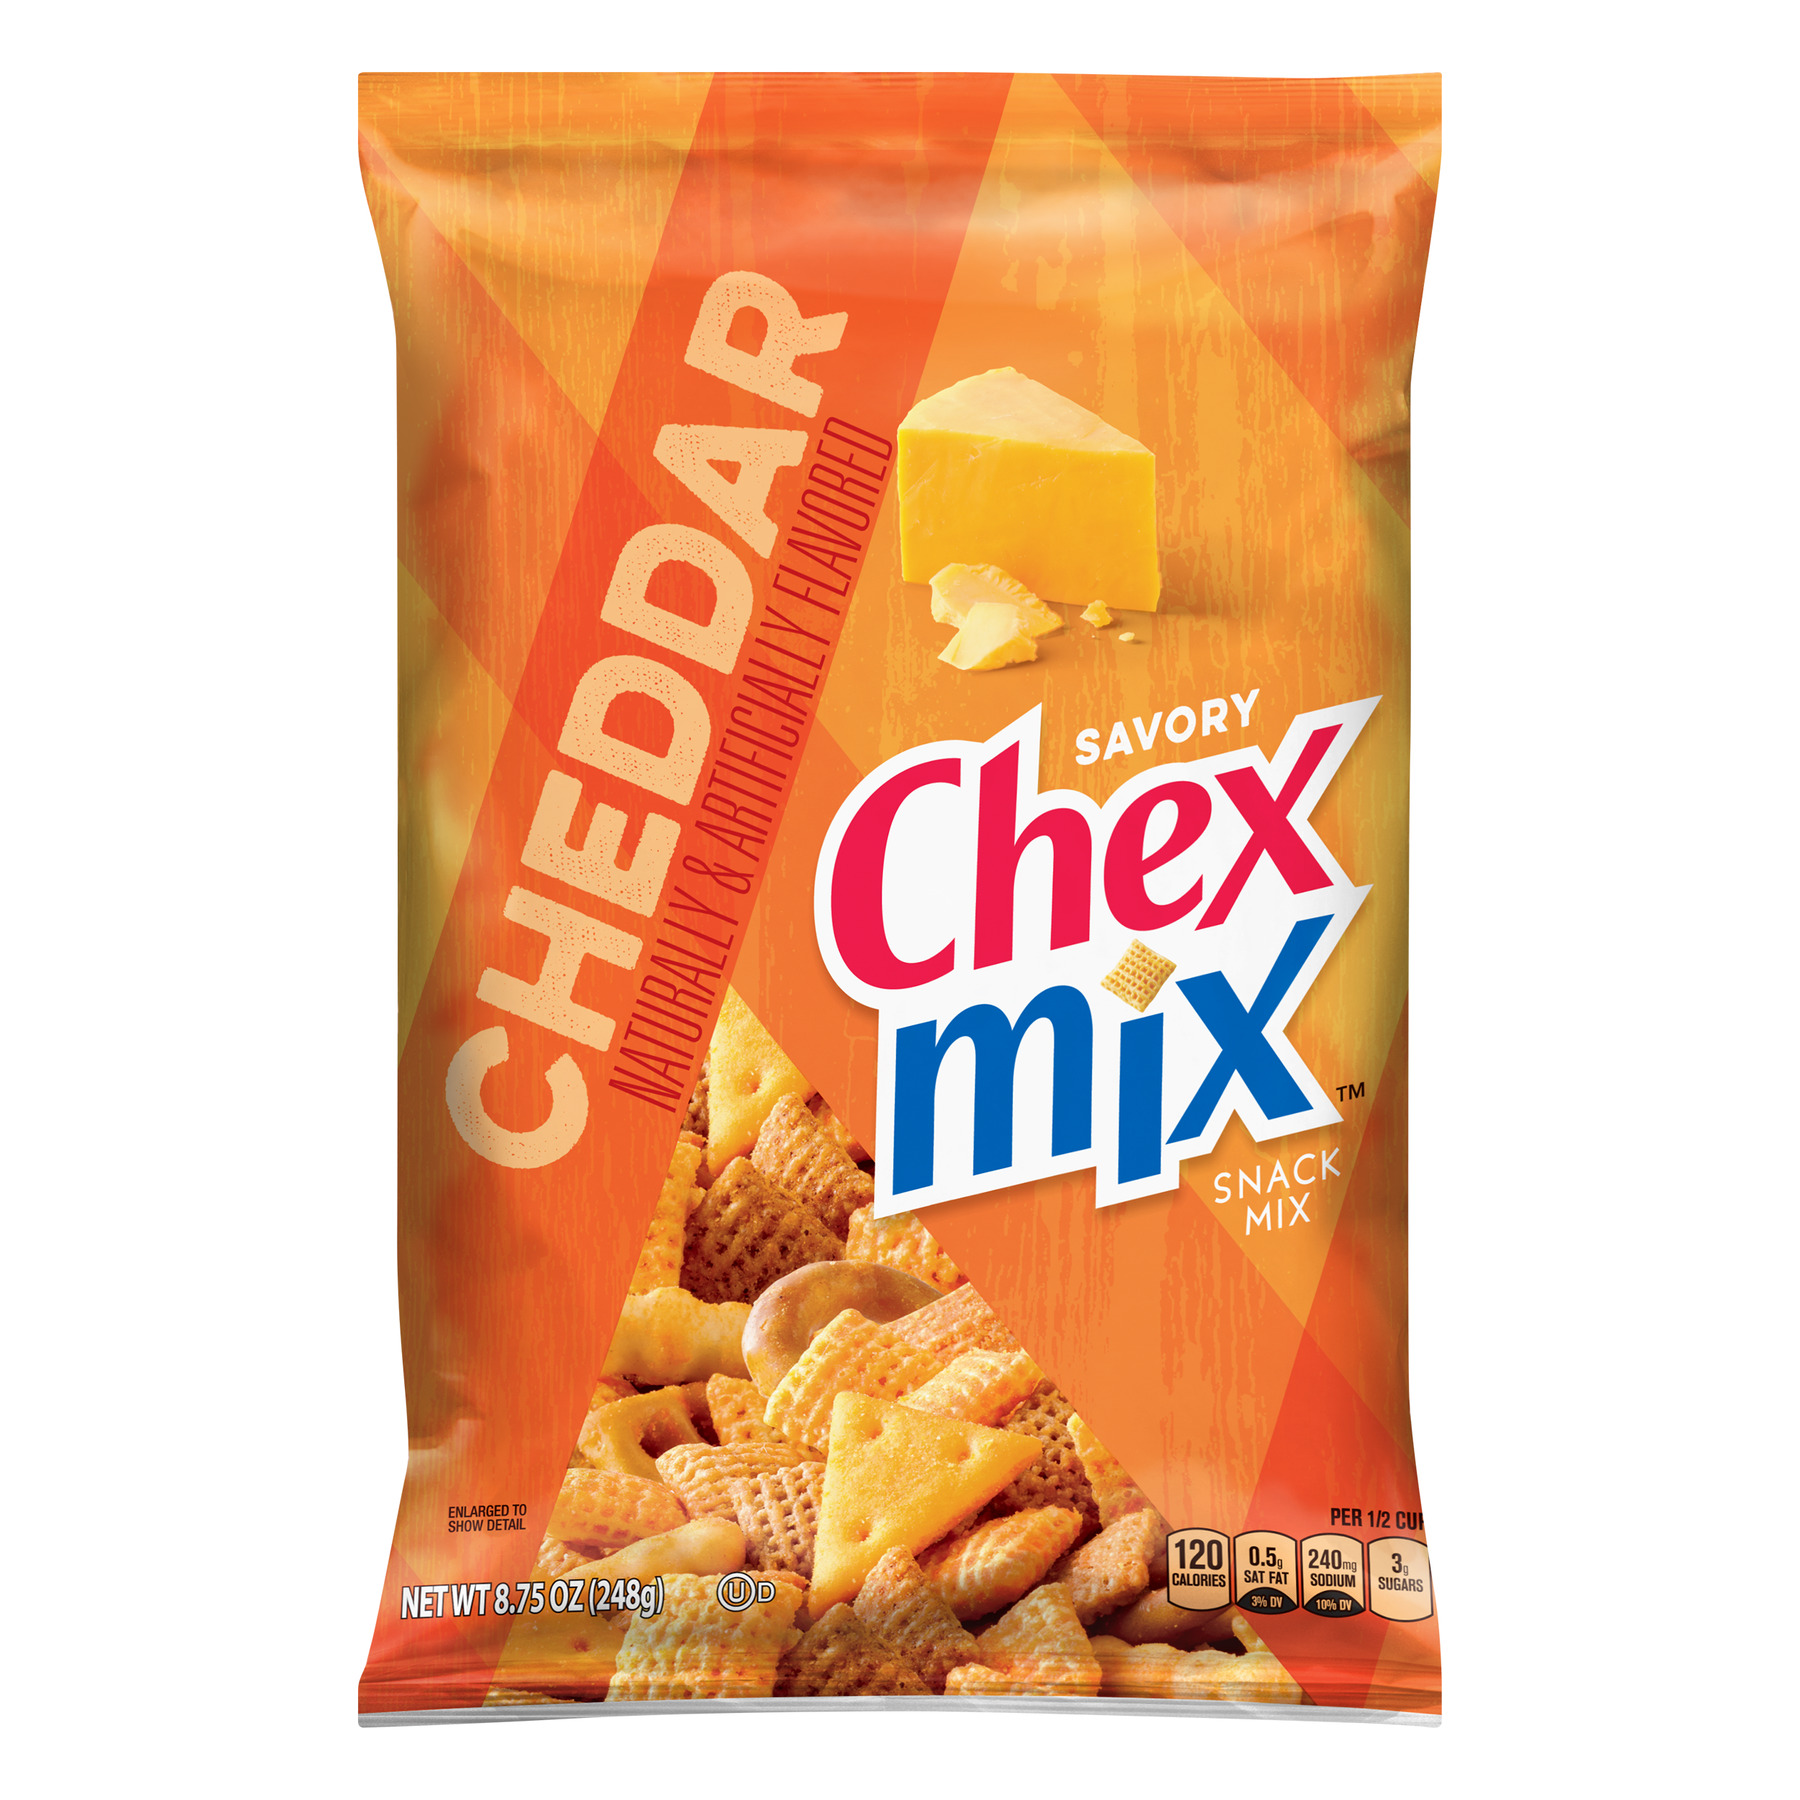 Chex Mix Savory Cheddar Snack Mix, 8.75 oz Bag